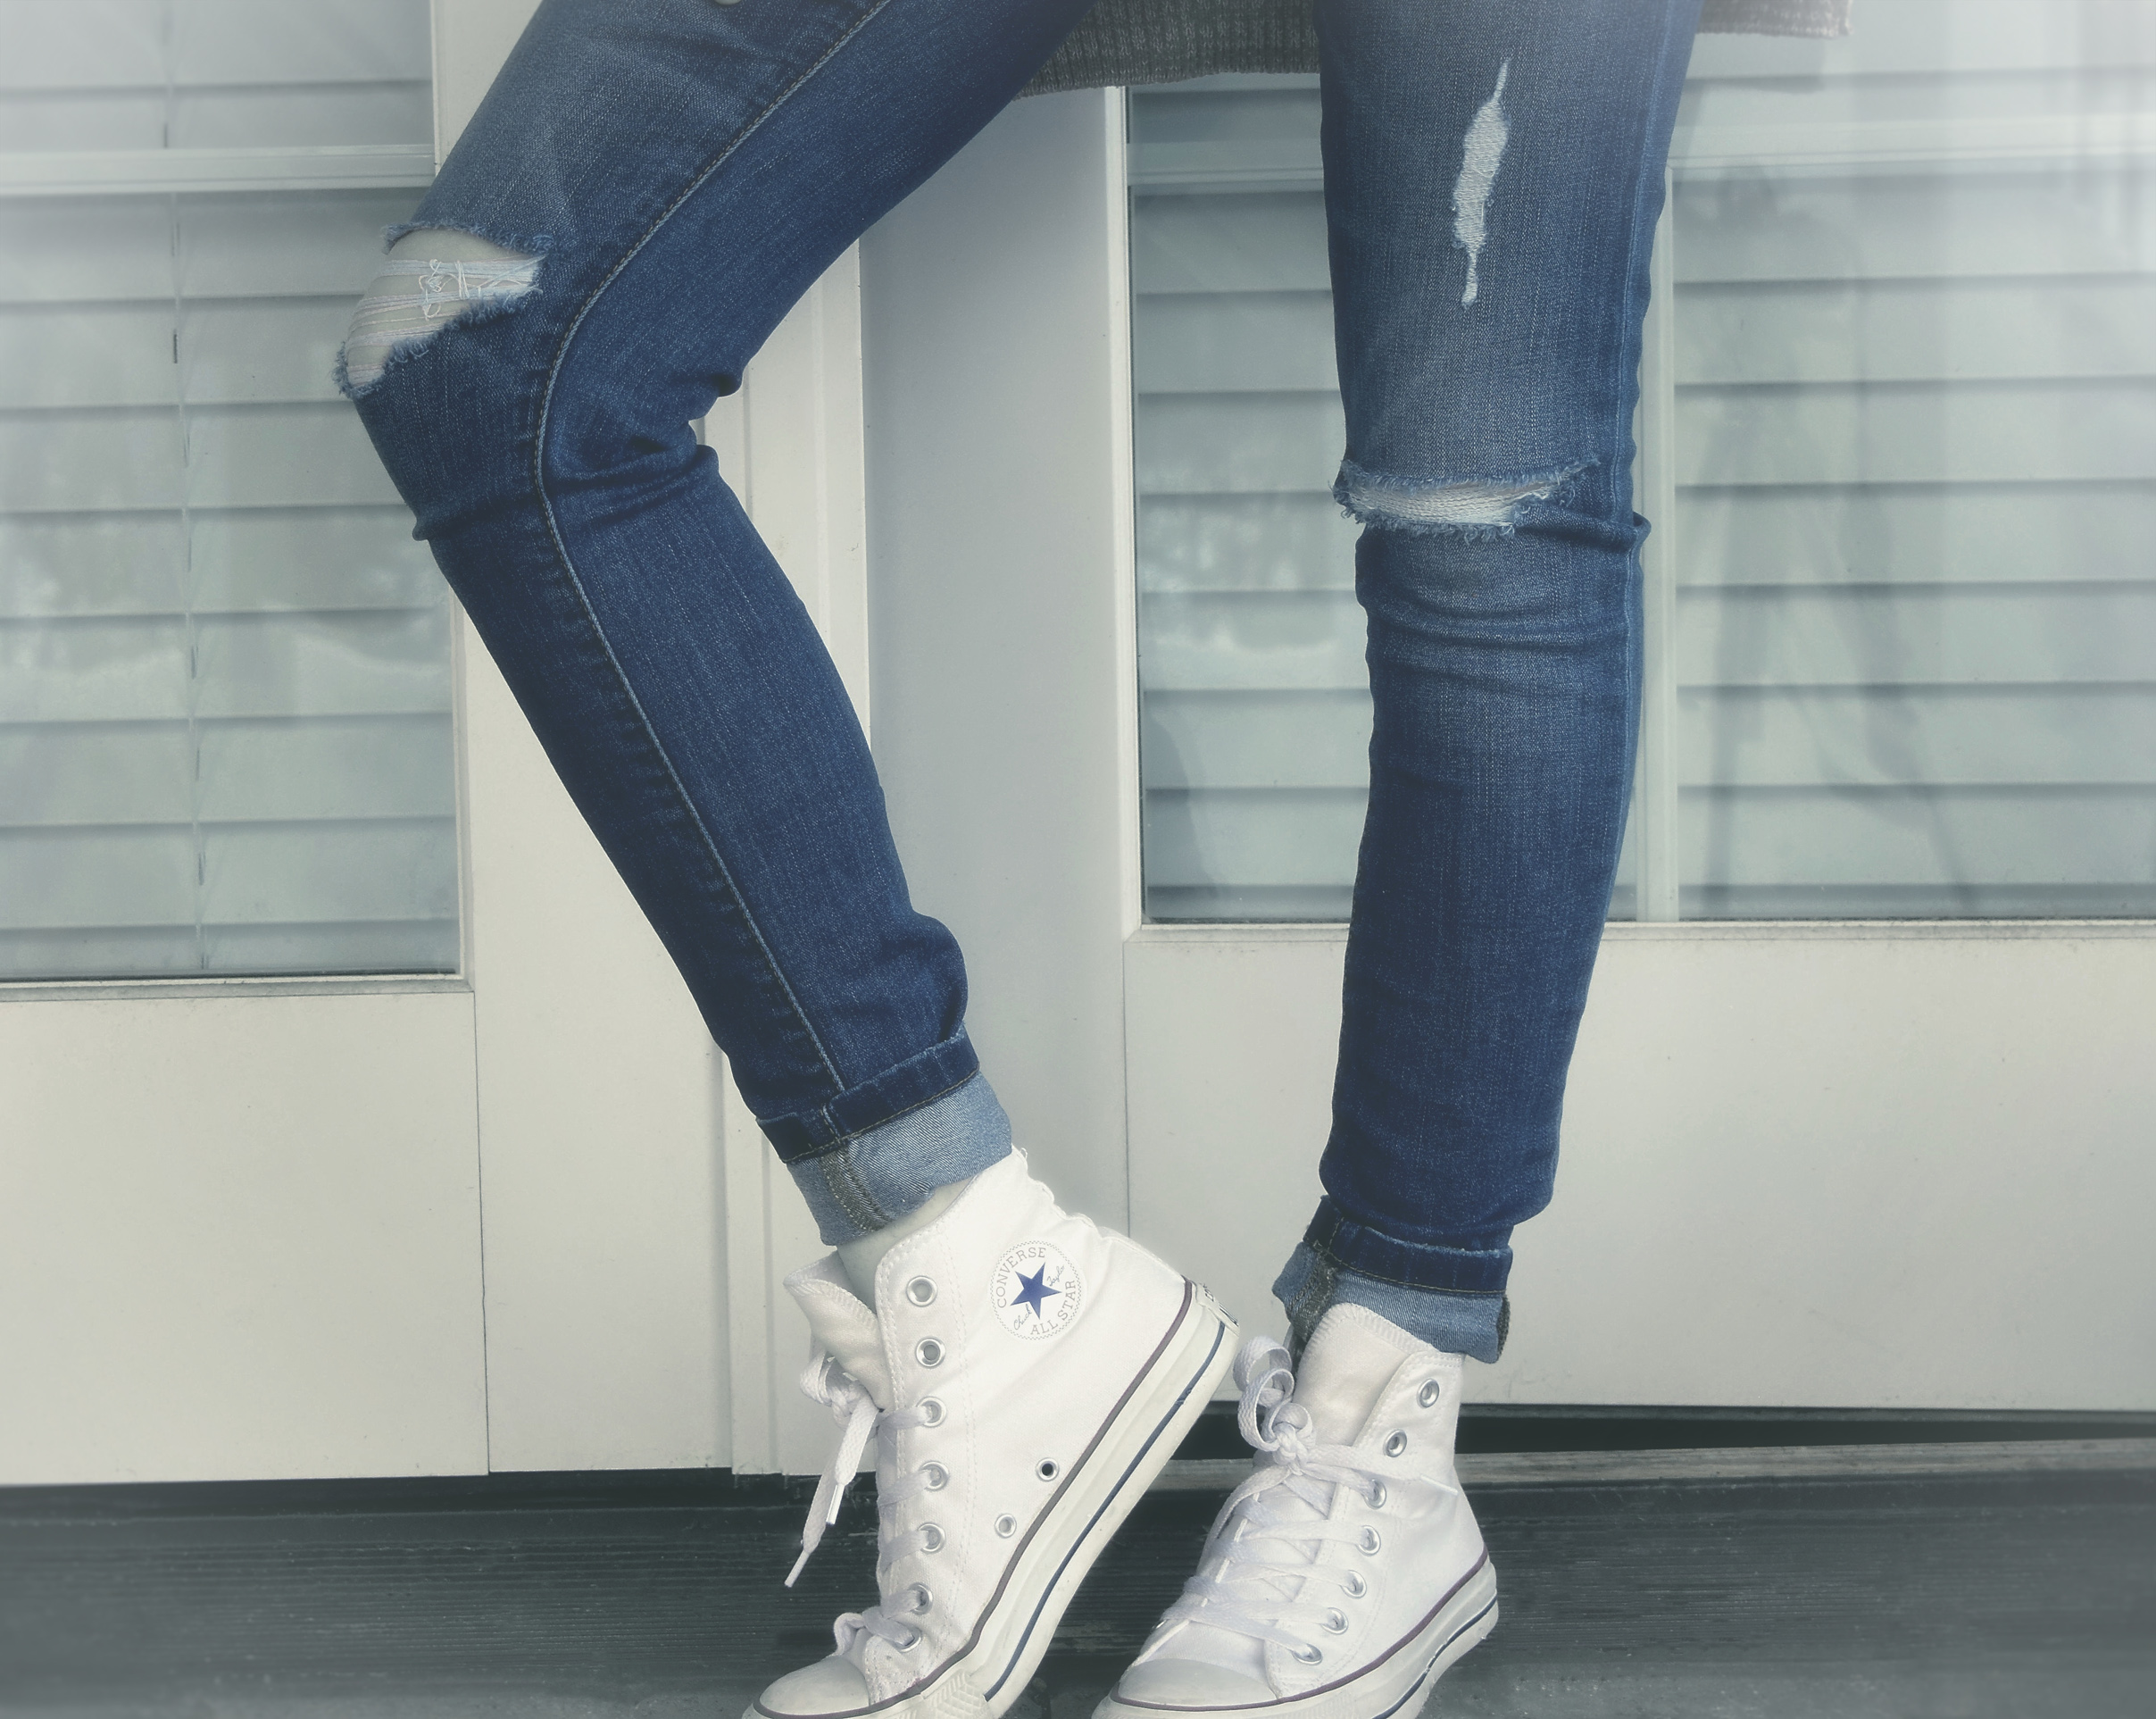 Urban Girl - Close-Up of Legs - Ripped Jeans and Sneakers, Addict, Street, Modern, Outdoor, HQ Photo